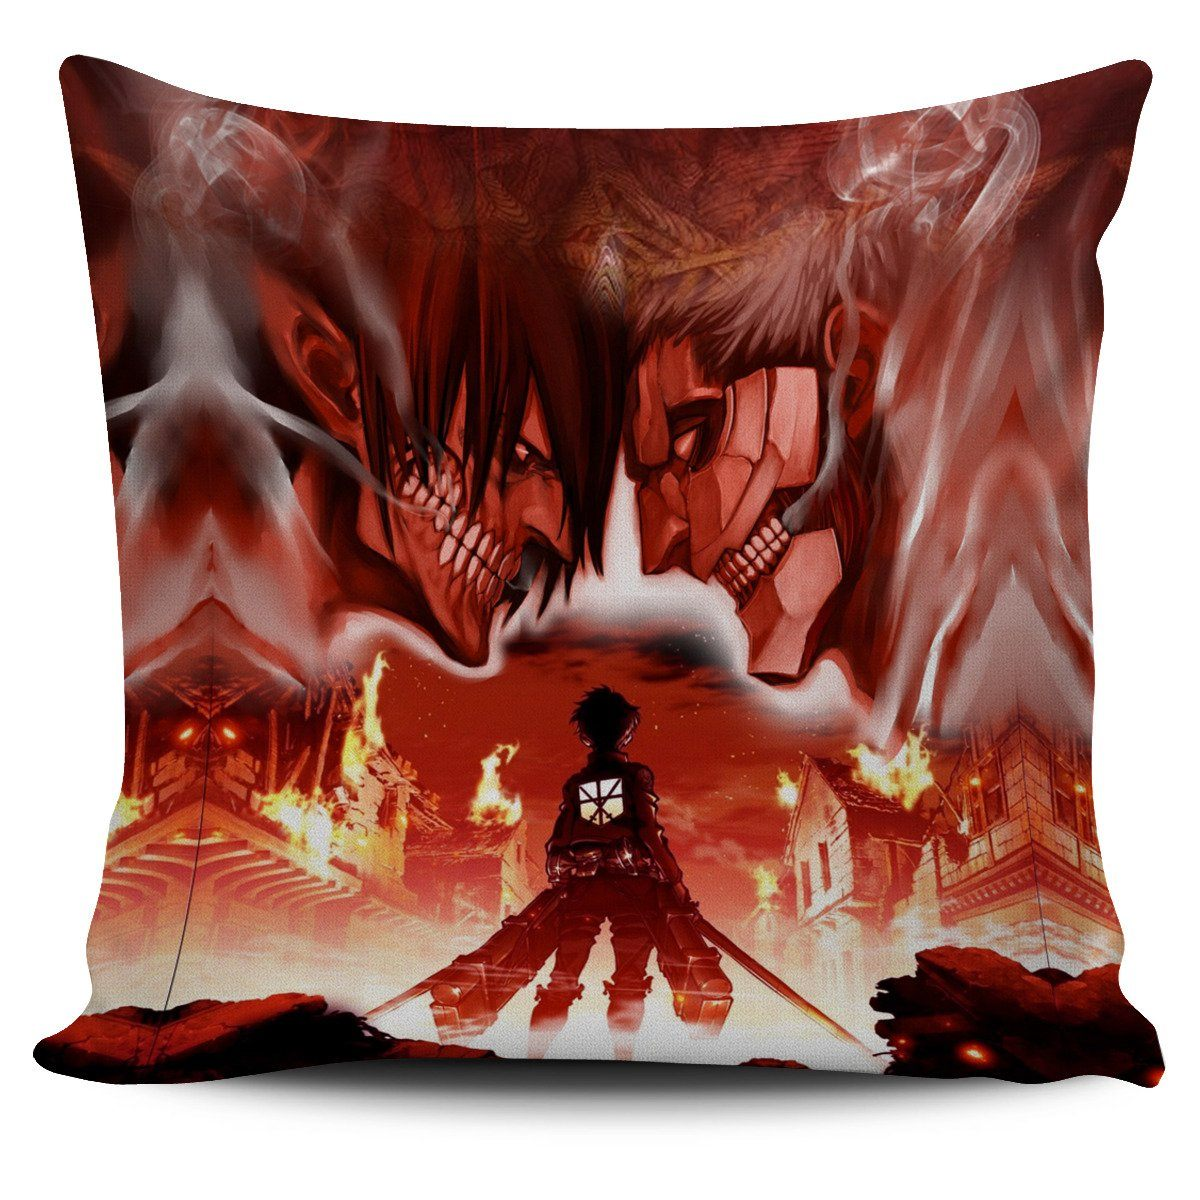 burning attack on titan pillow cover 334244 - Attack On Titan Store